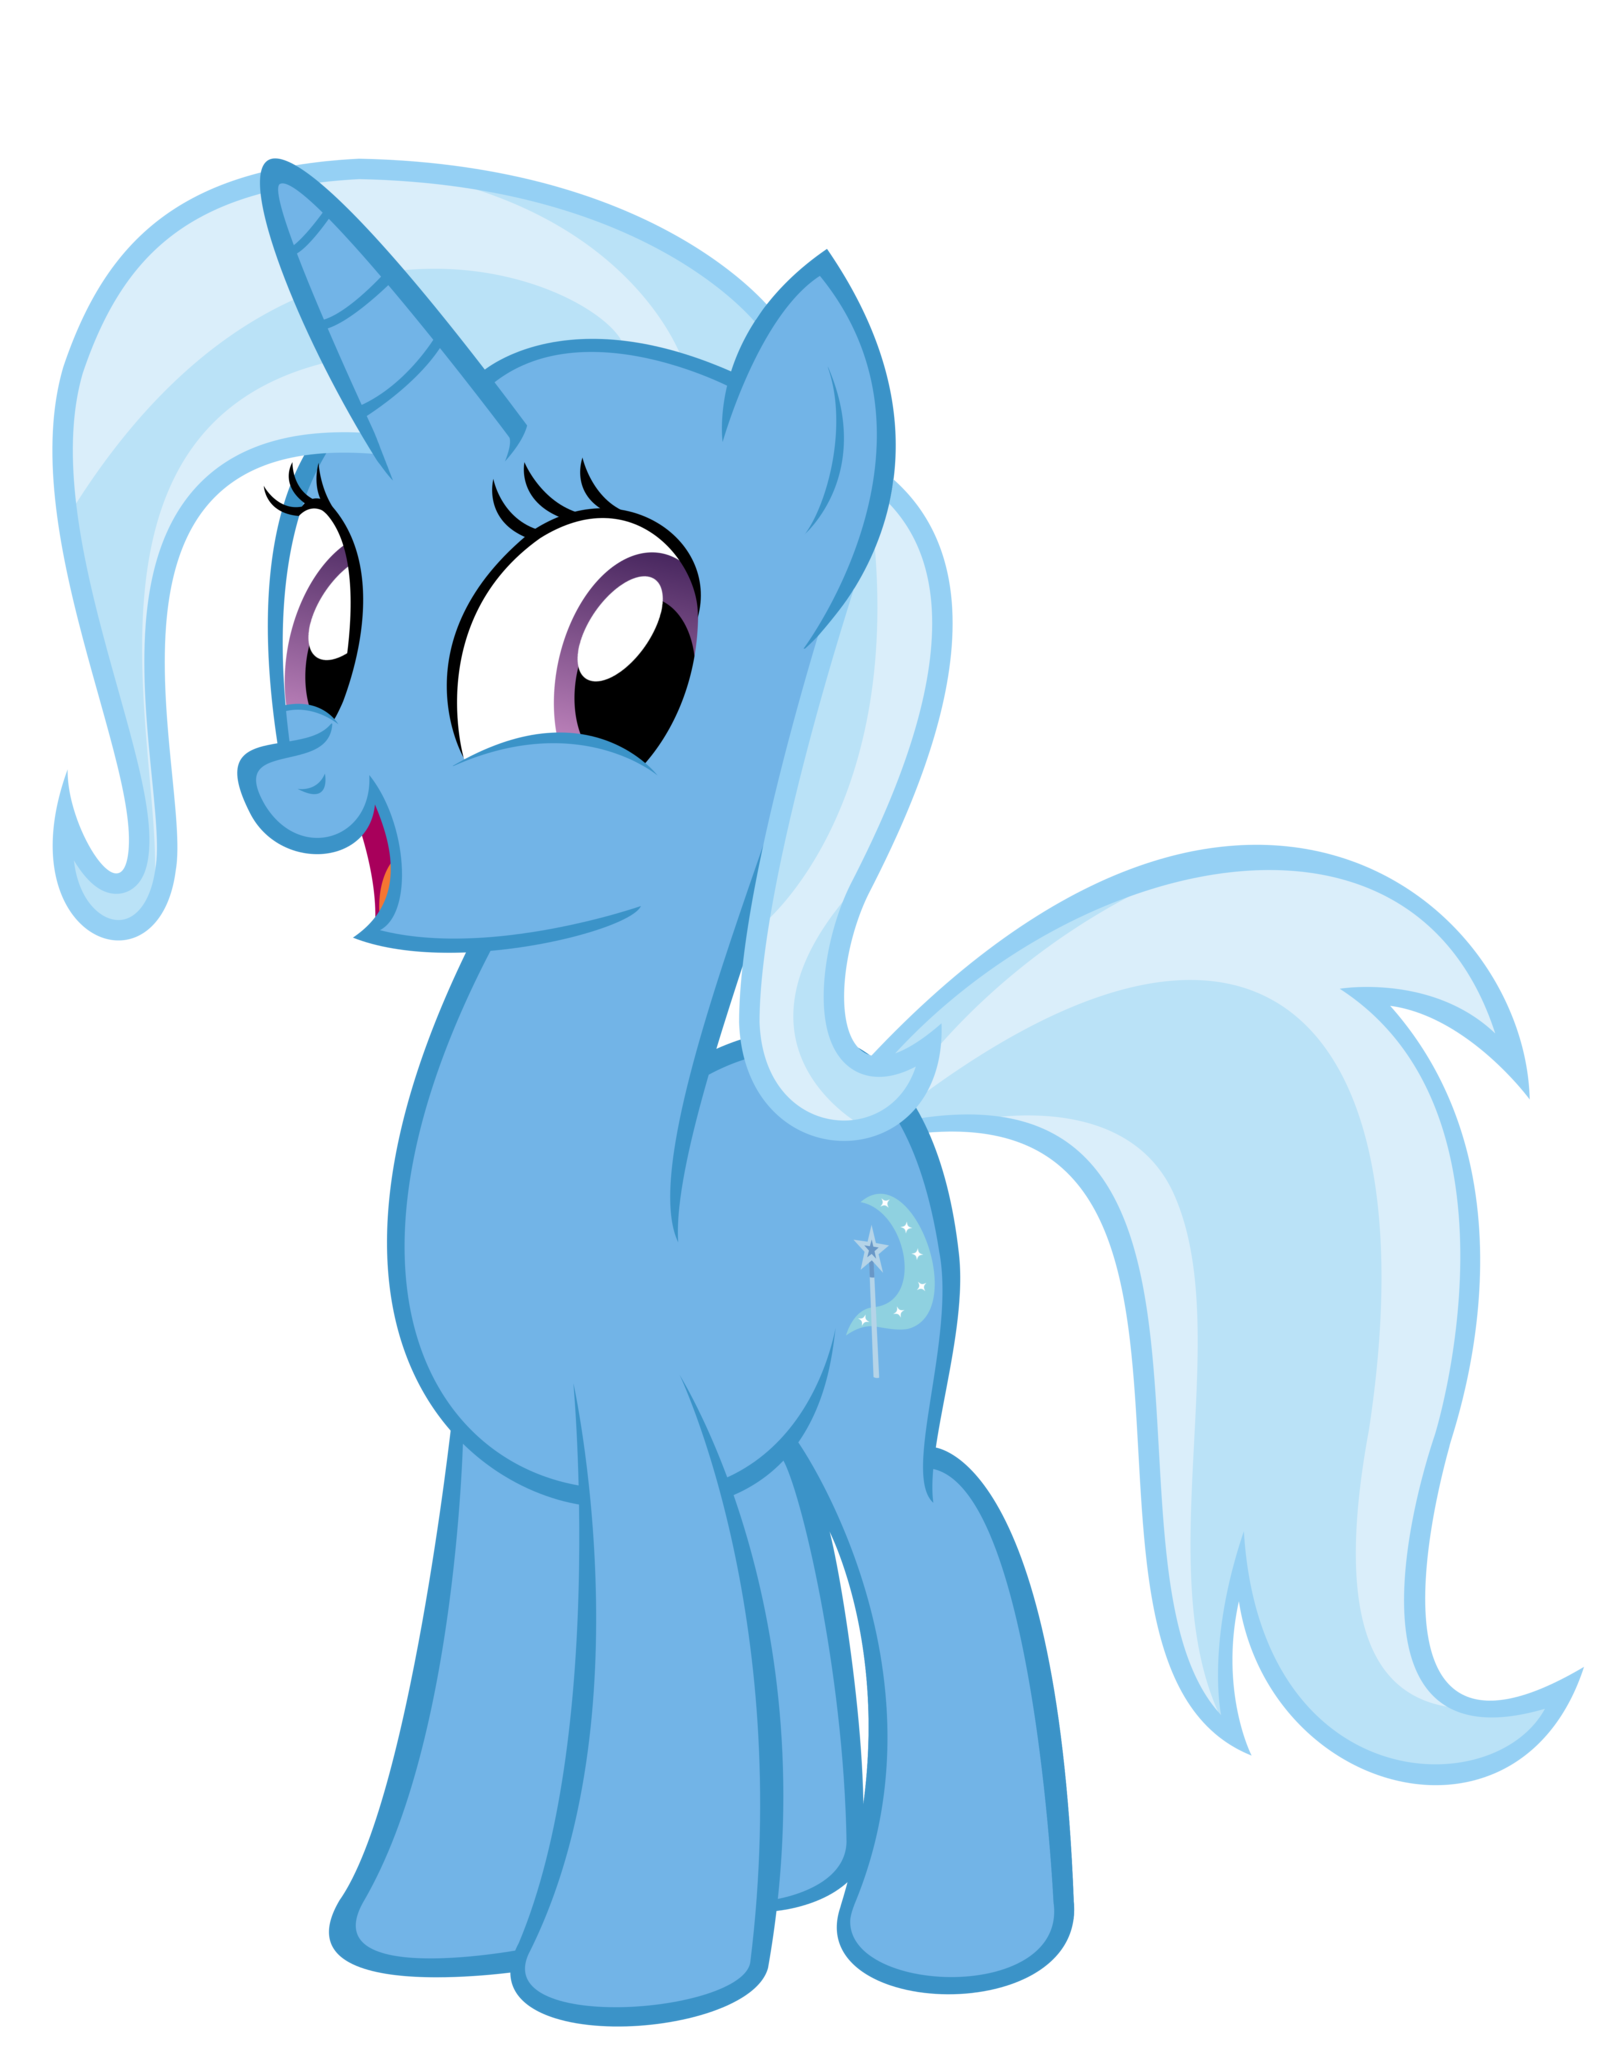 Trixie vector unicorn. The cute and adorable